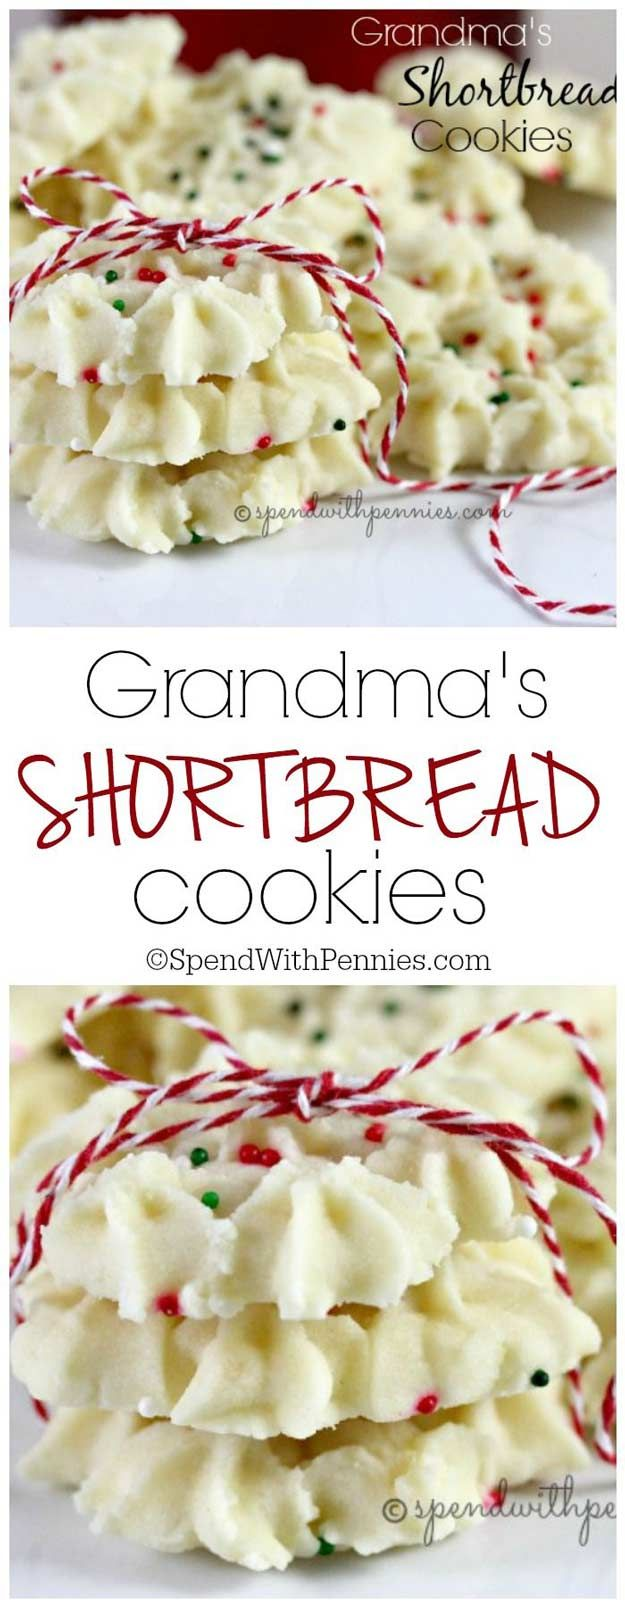 Shortbread Cookies | My Favorite Christmas Cookies To Make From Scratch | Best Homemade Recipes For Holidays by Pioneer Settler at http://pioneersettler.com/favorite-christmas-cookies-make-scratch/